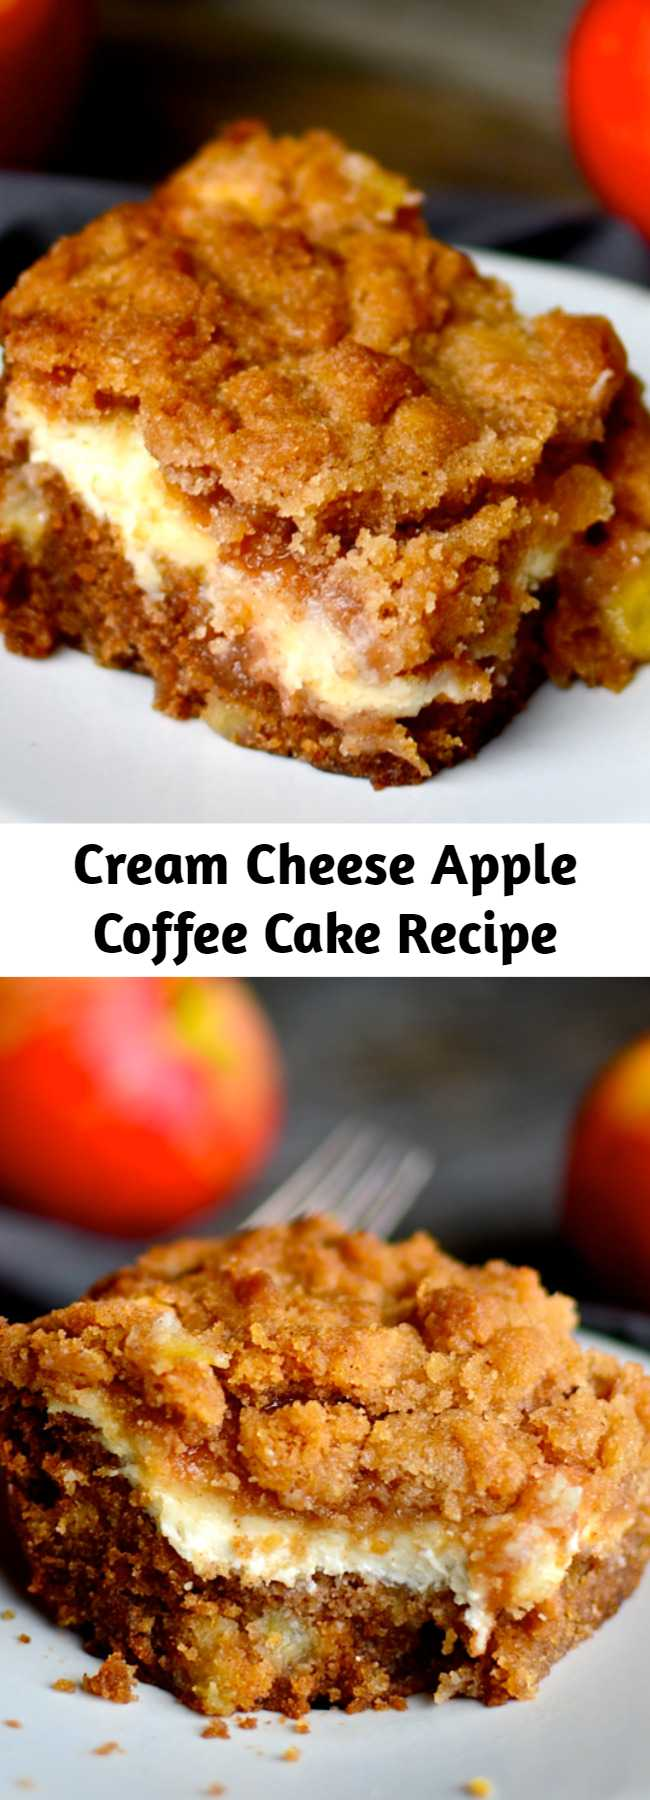 Cream Cheese Apple Coffee Cake Recipe - What a beautiful dessert. I love using the apples of the season.